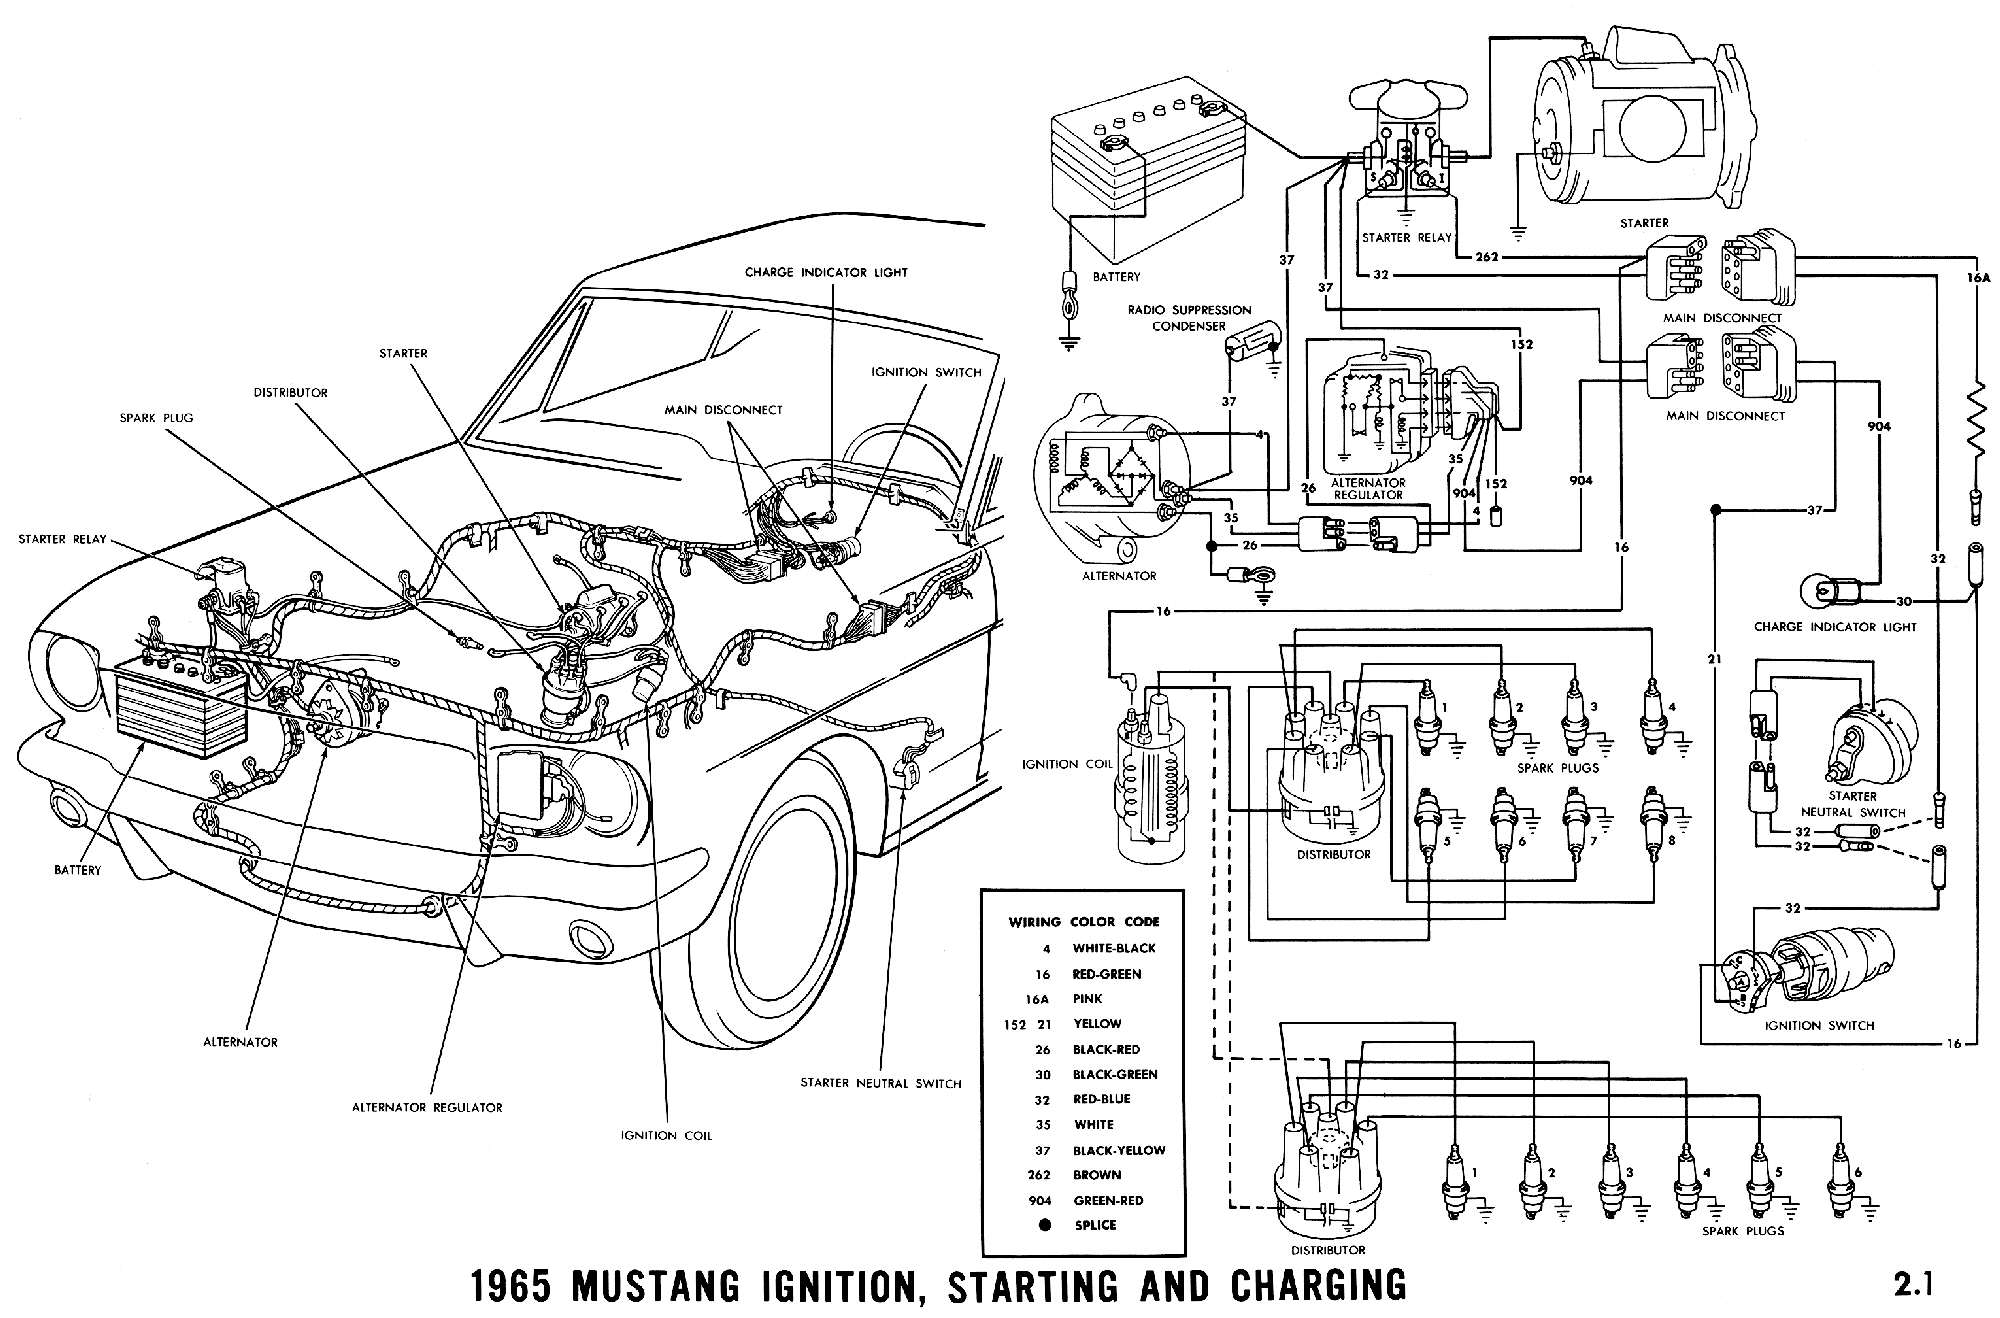 Schematics h further 1go3o 1966 Pontiac Gto Wires Going Starter further 54ue7 Not Alternator Charge No Voltage moreover What Are The Functions Of AVR In A Generator as well Delco Remy Alternator Wiring Diagram For Generator. on ford alternator connections